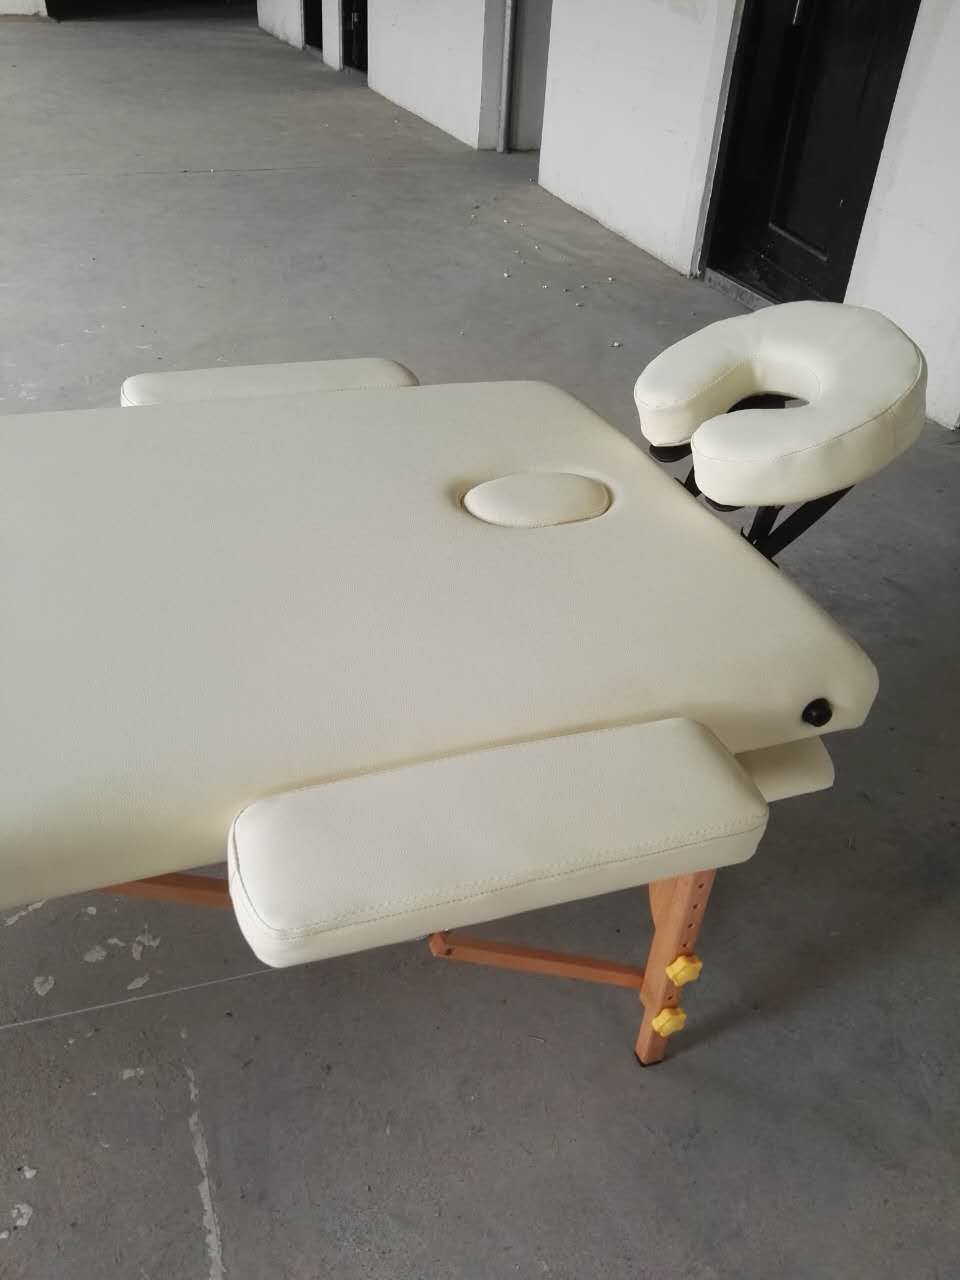 Beauty Wooden Massage Table With White PU Leather